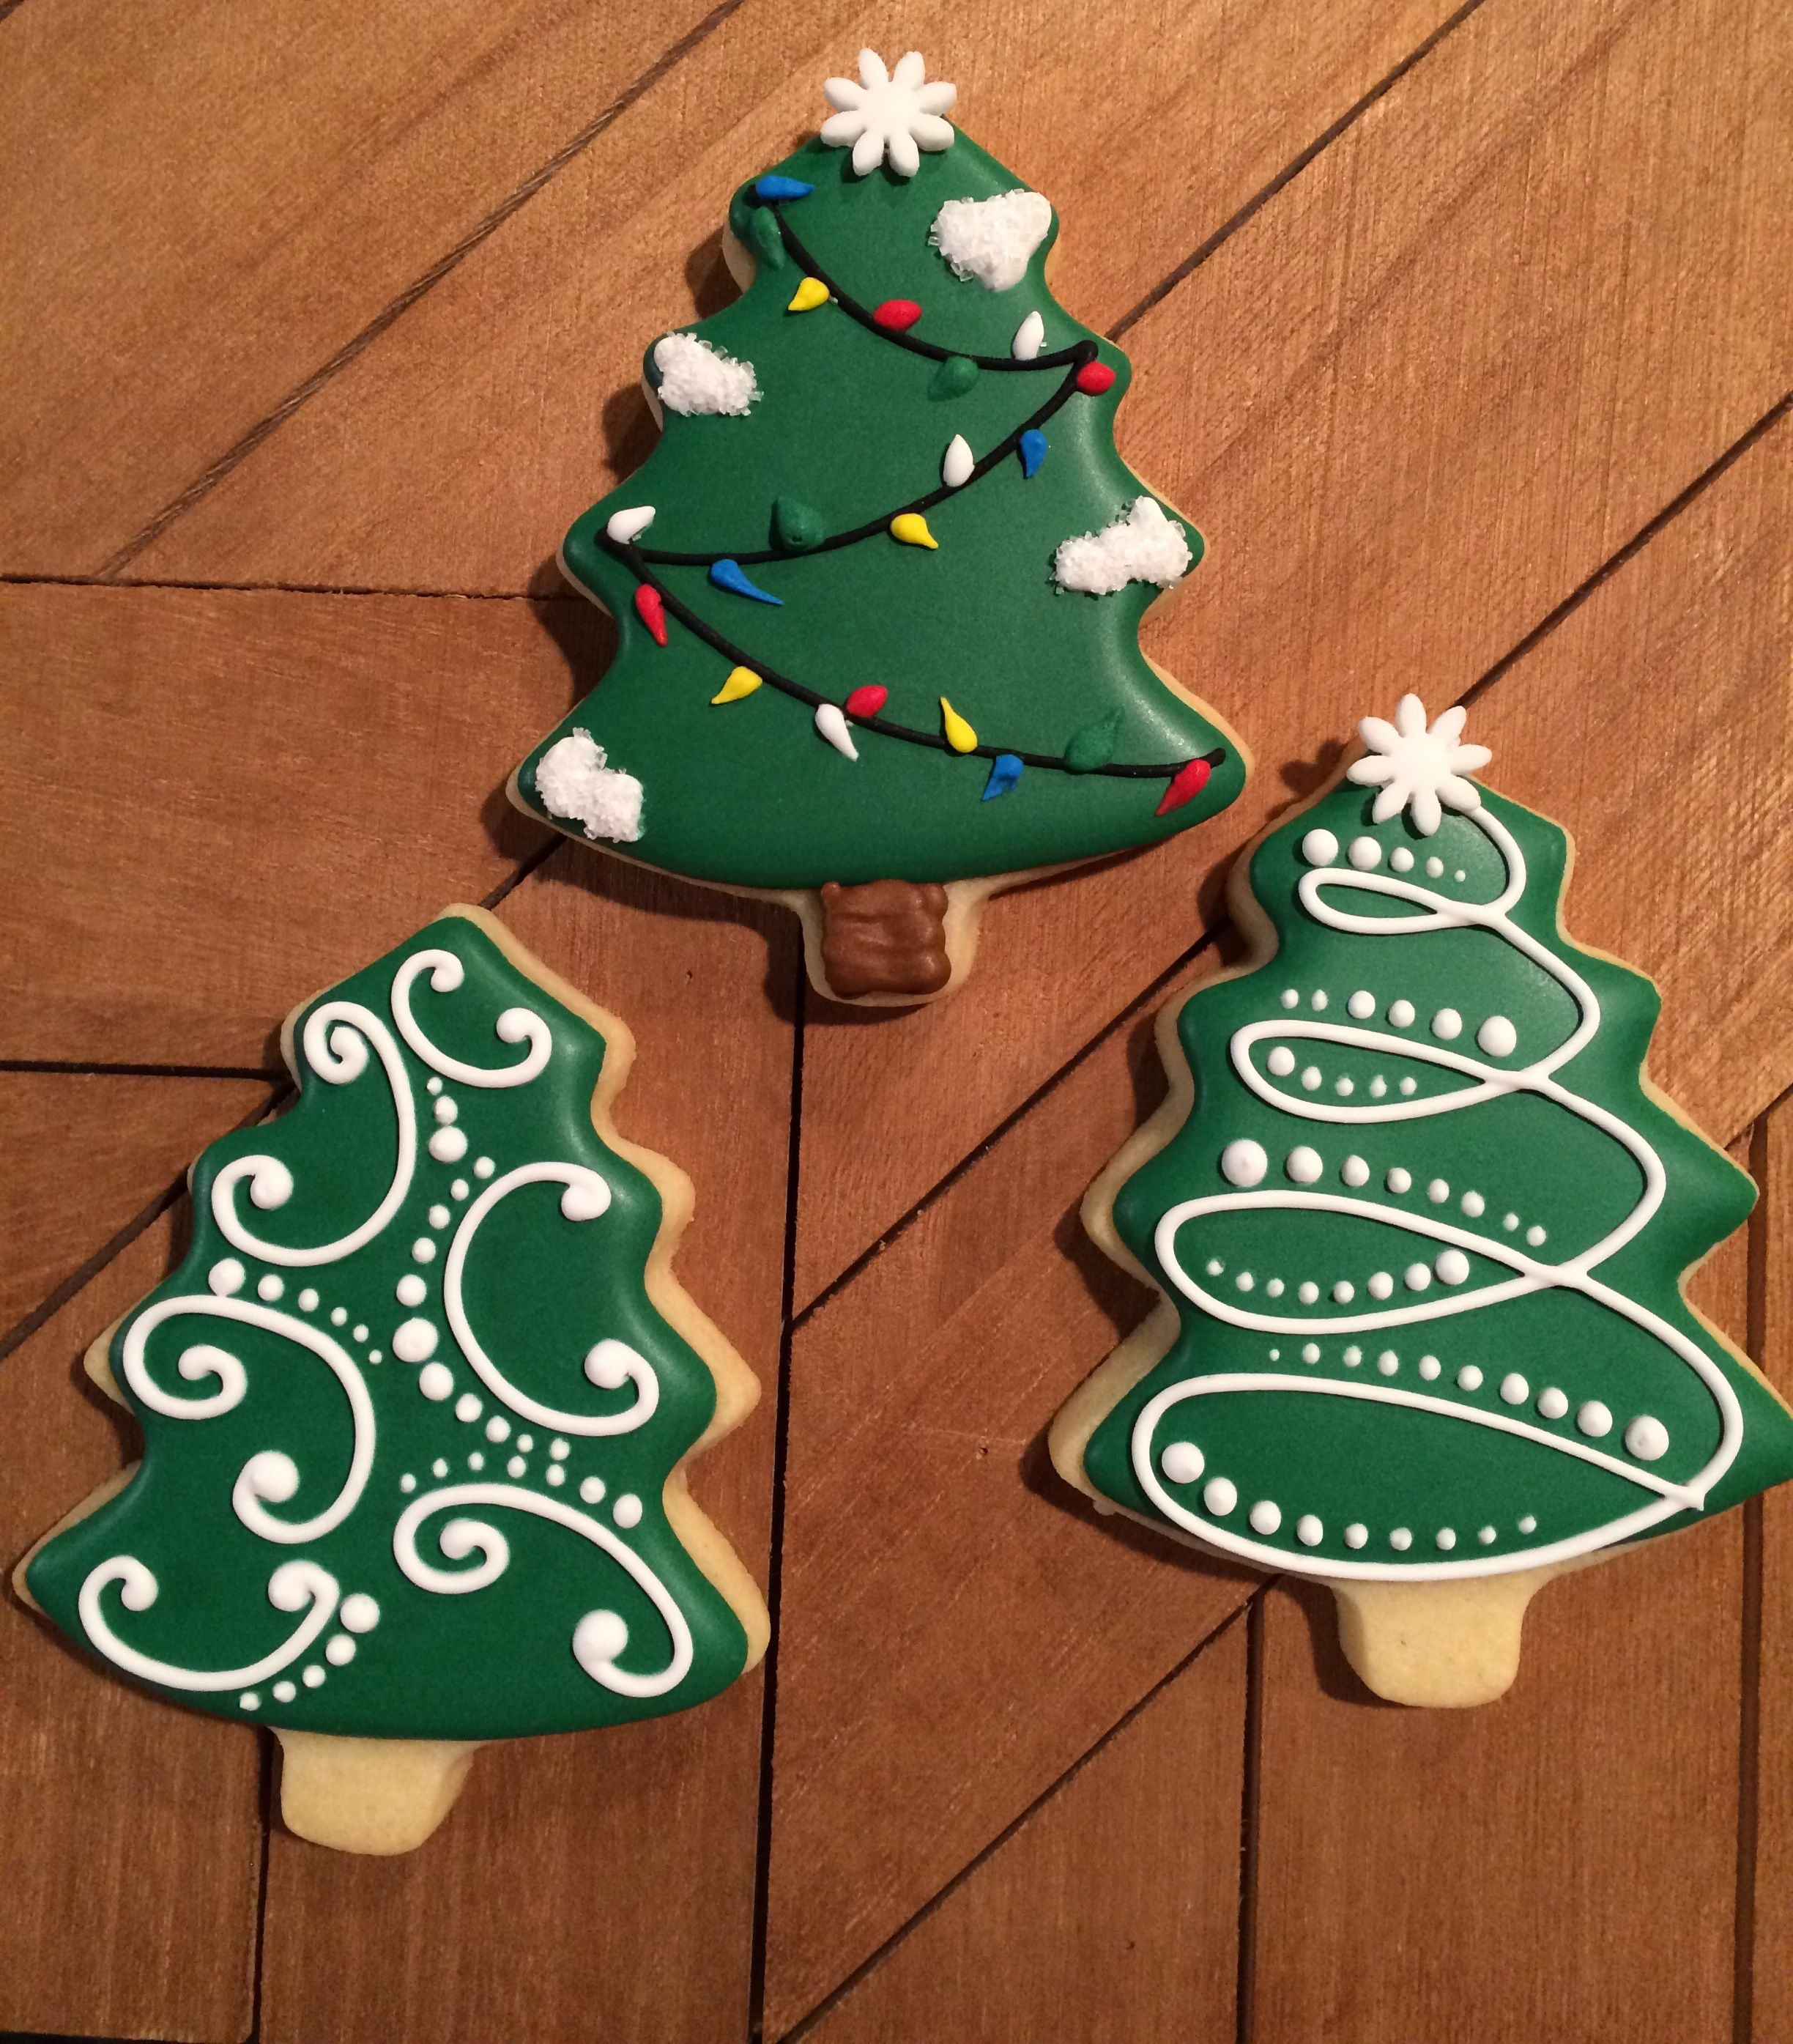 Christmas Tree Decorated Cookies: Pictures Of Decorated Christmas Tree Cookies